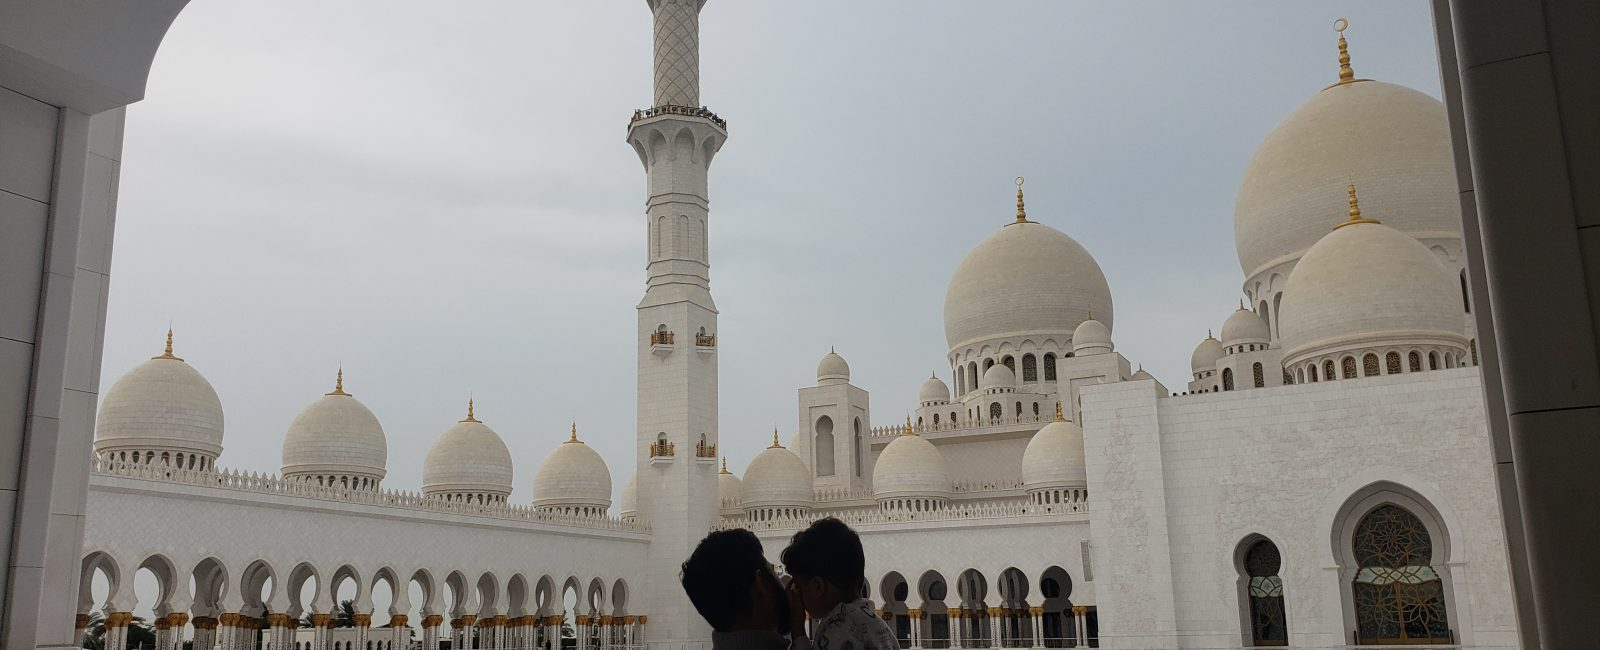 Sheikh Zayed Grand Mosque Tour, Abu Dhabi